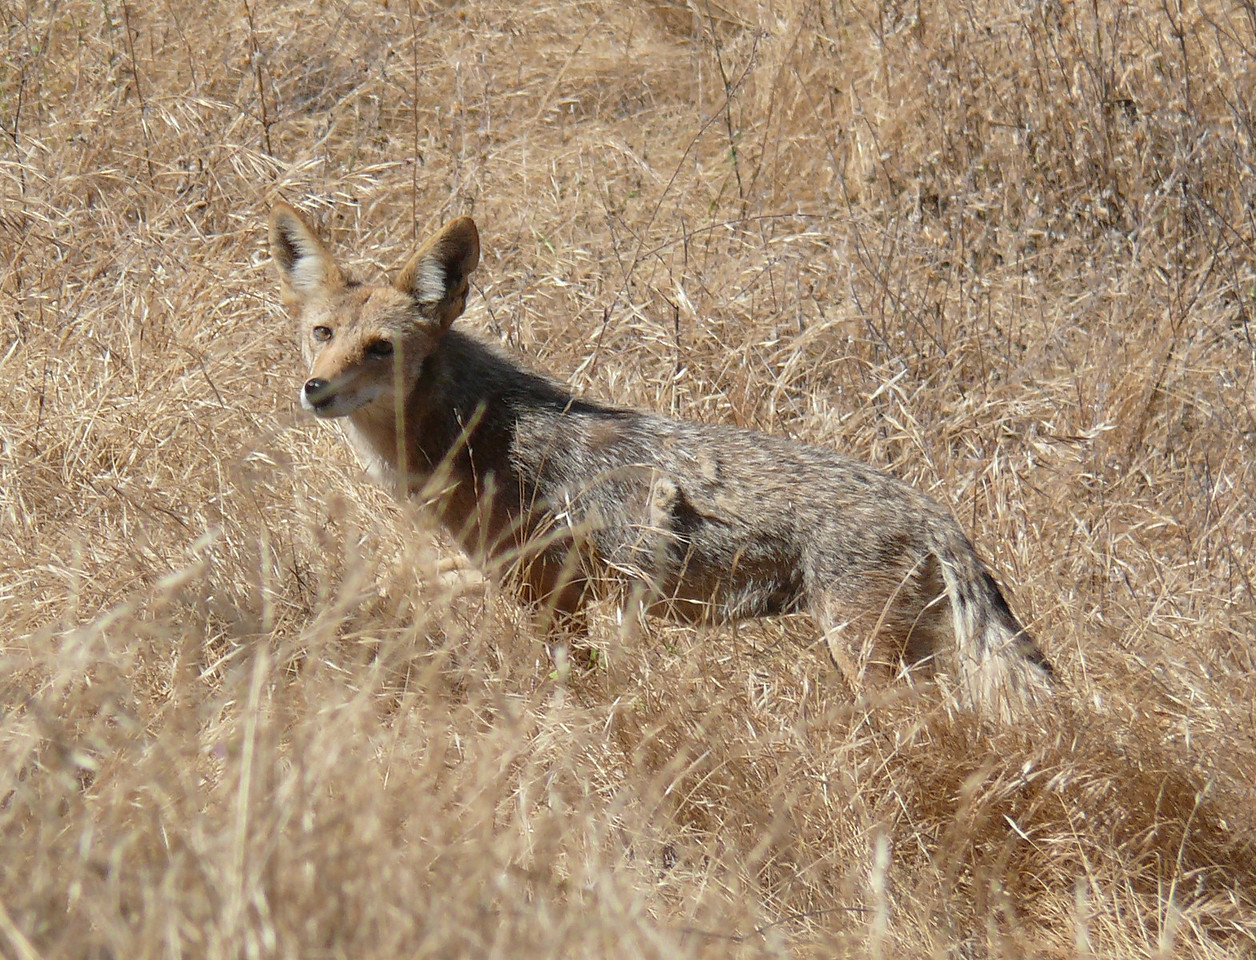 Then we saw the coyote in full view.  It was a nursing mother probably with a den and pups somewhere nearby.